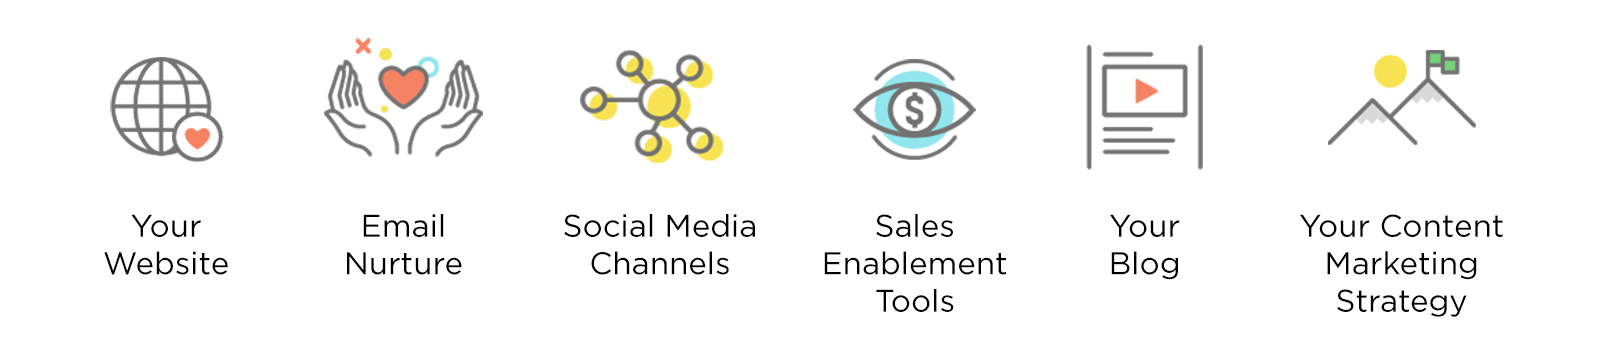 Marketing channels where you can use video